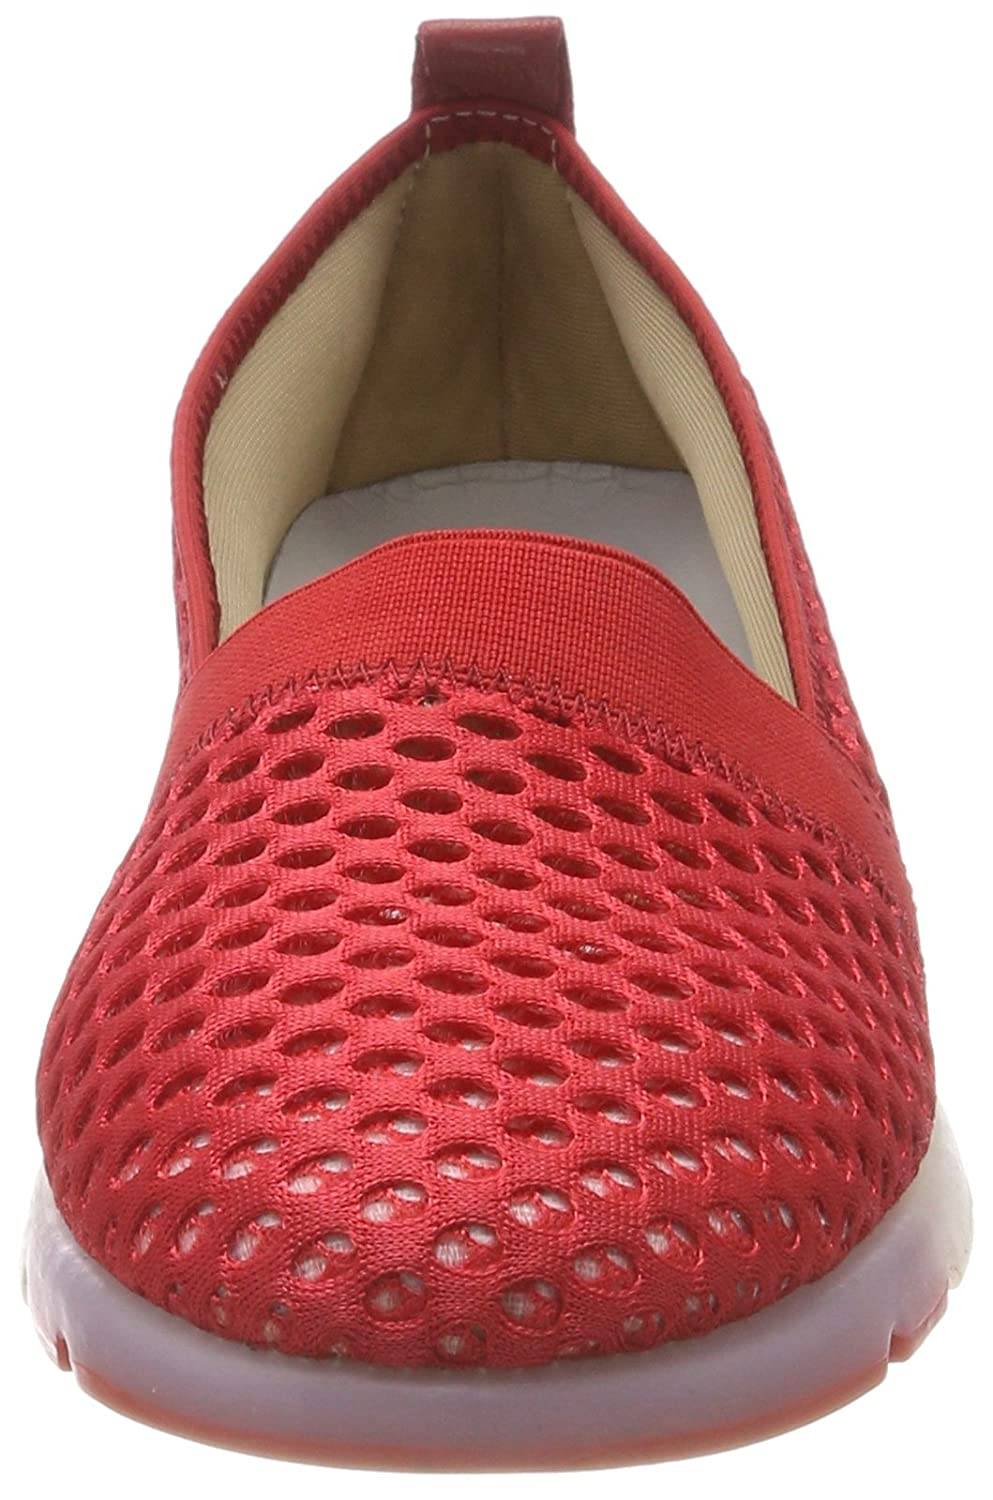 Aerosoles FAST MIND MIX PUMA Mocasines Mujer, Rojo (Fire), 40 EU (6.5 UK): Amazon.es: Zapatos y complementos